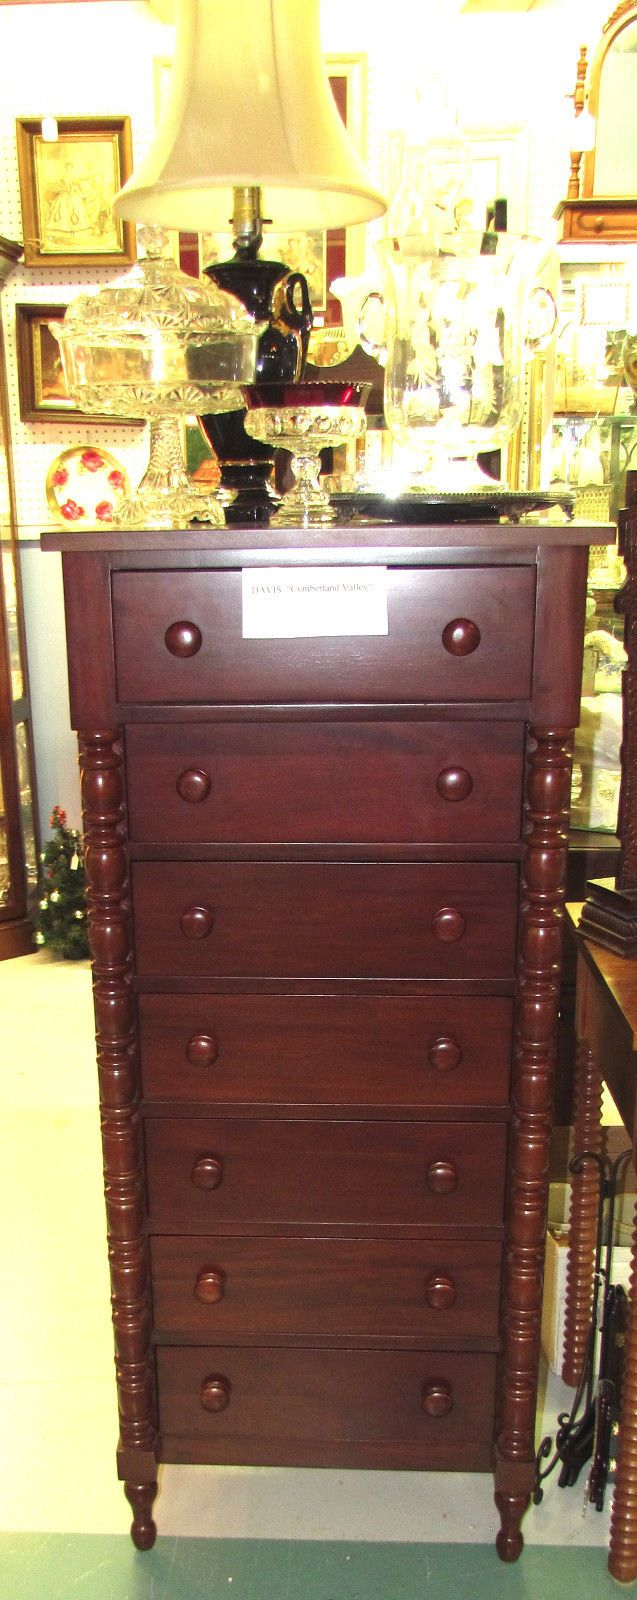 Davis Cabinet Cumberland Valley Lingerie Chest Cabinet Companies Cherry Furniture And